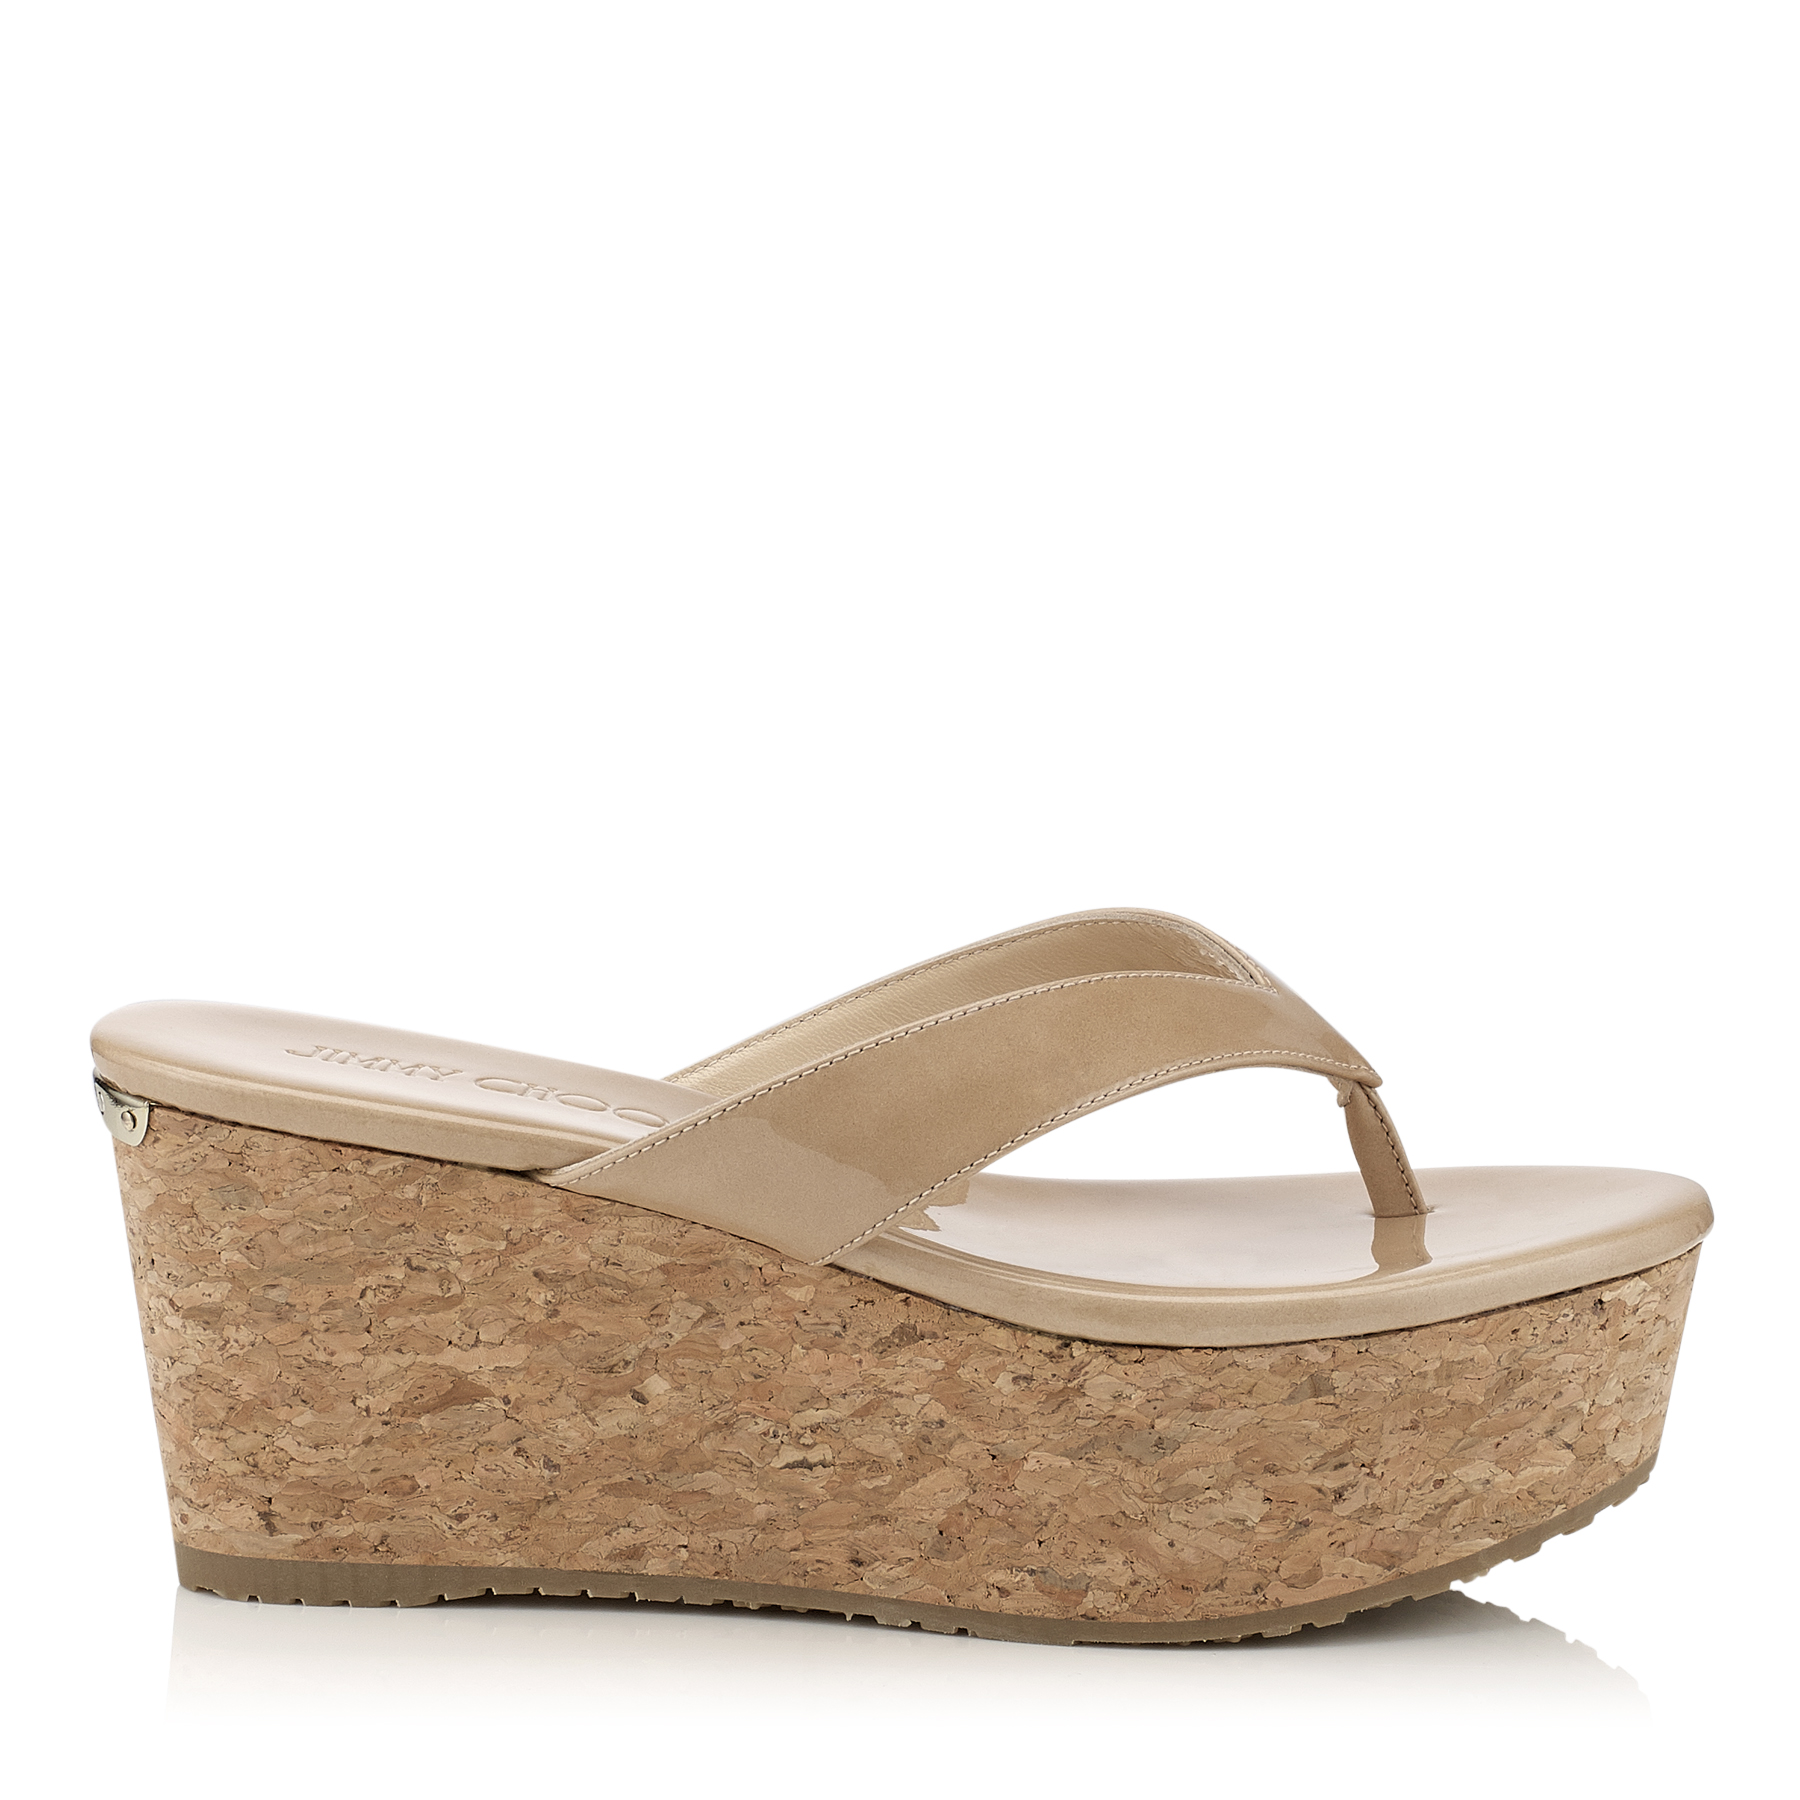 PAQUE 70 Nude Patent Leather Cork Wedges